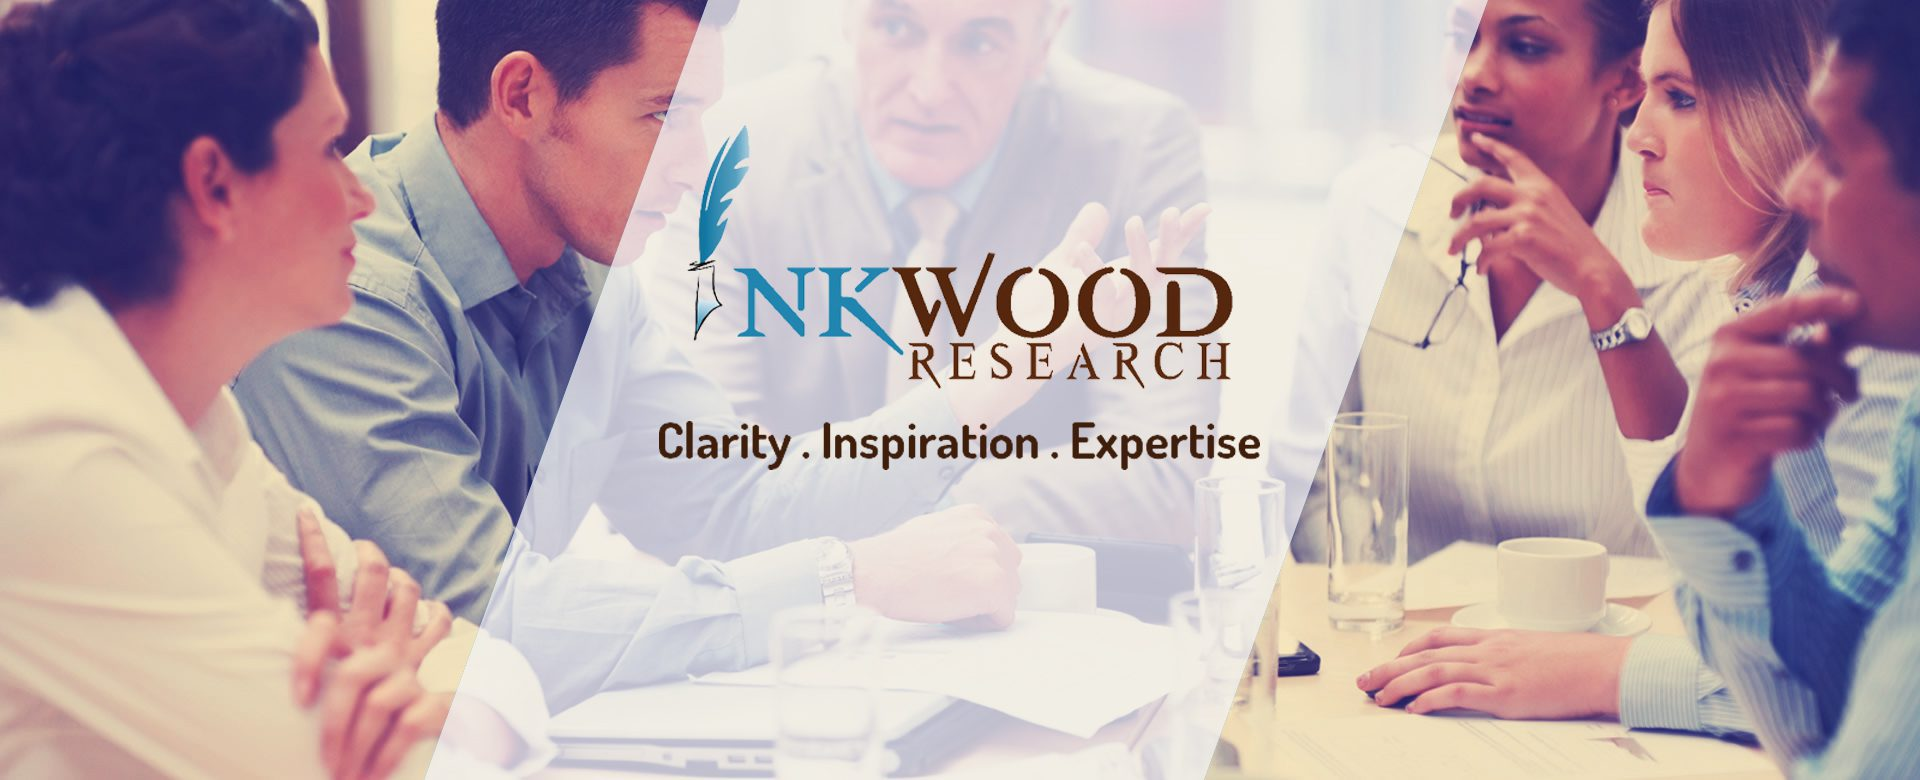 Market Research Reports - Inkwood Research